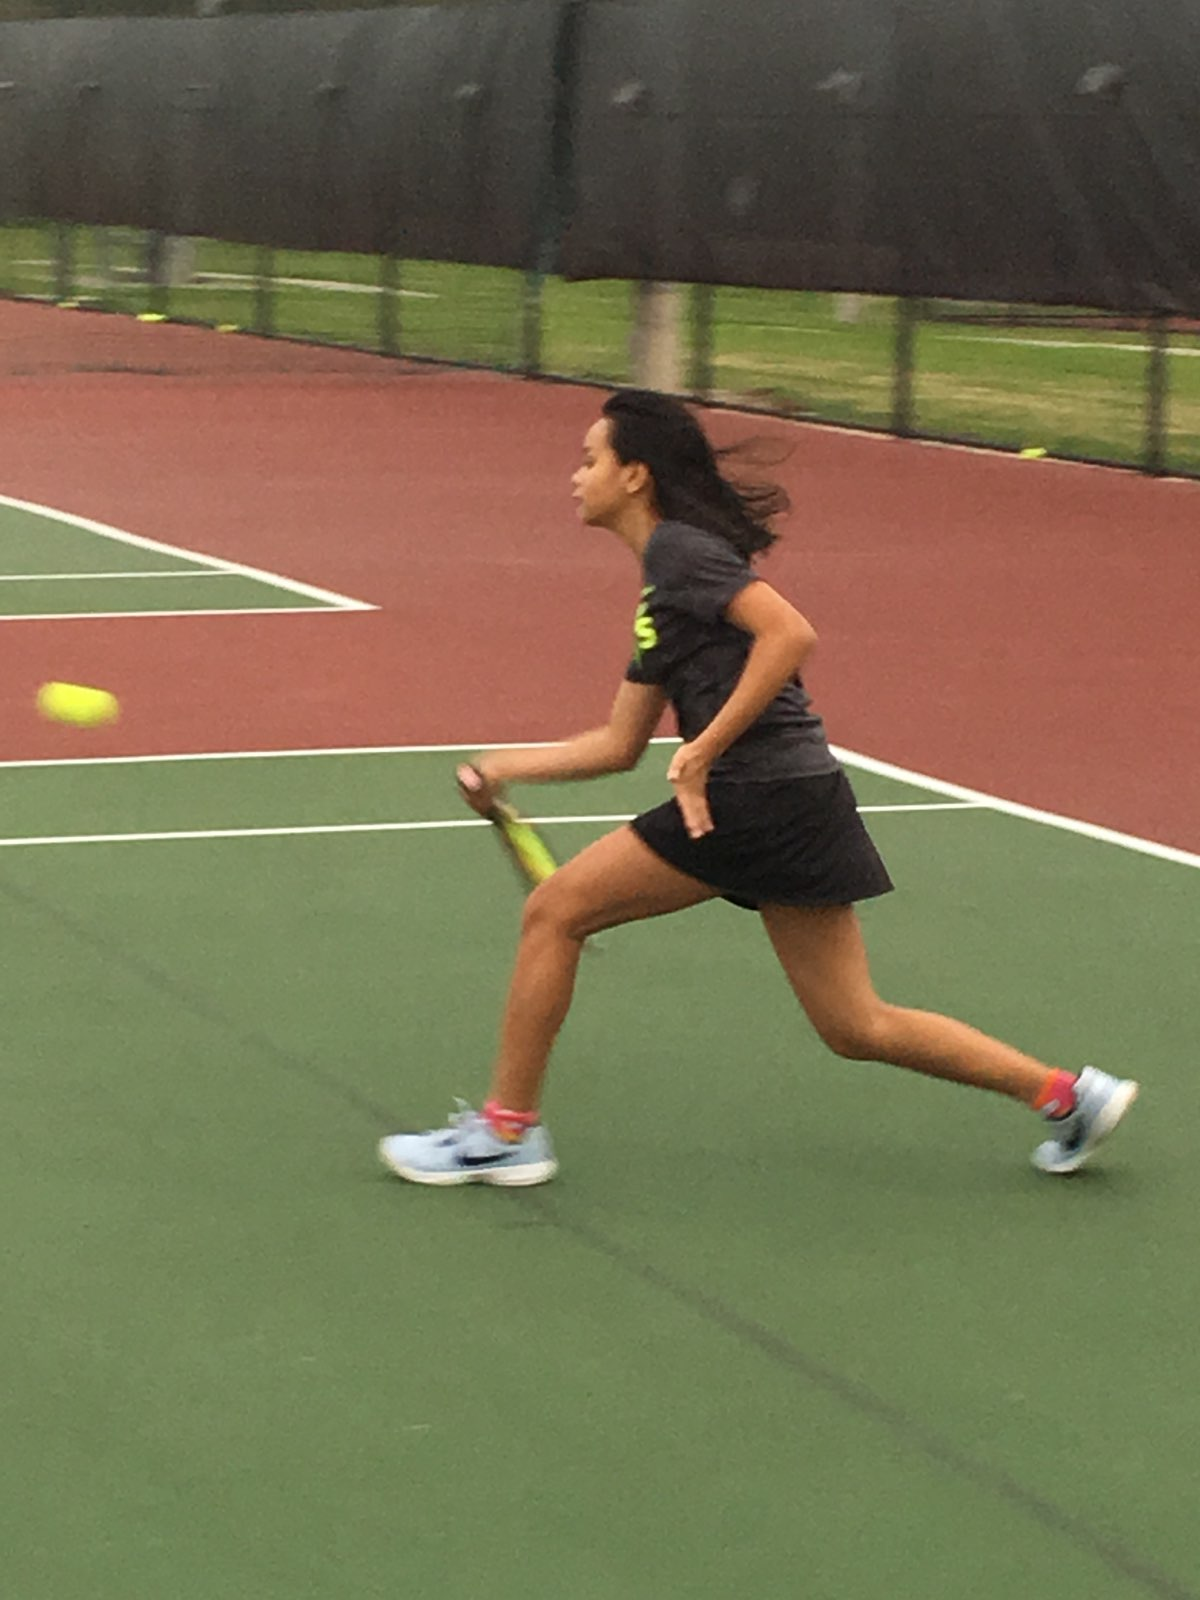 High Performance Tennis Training Program